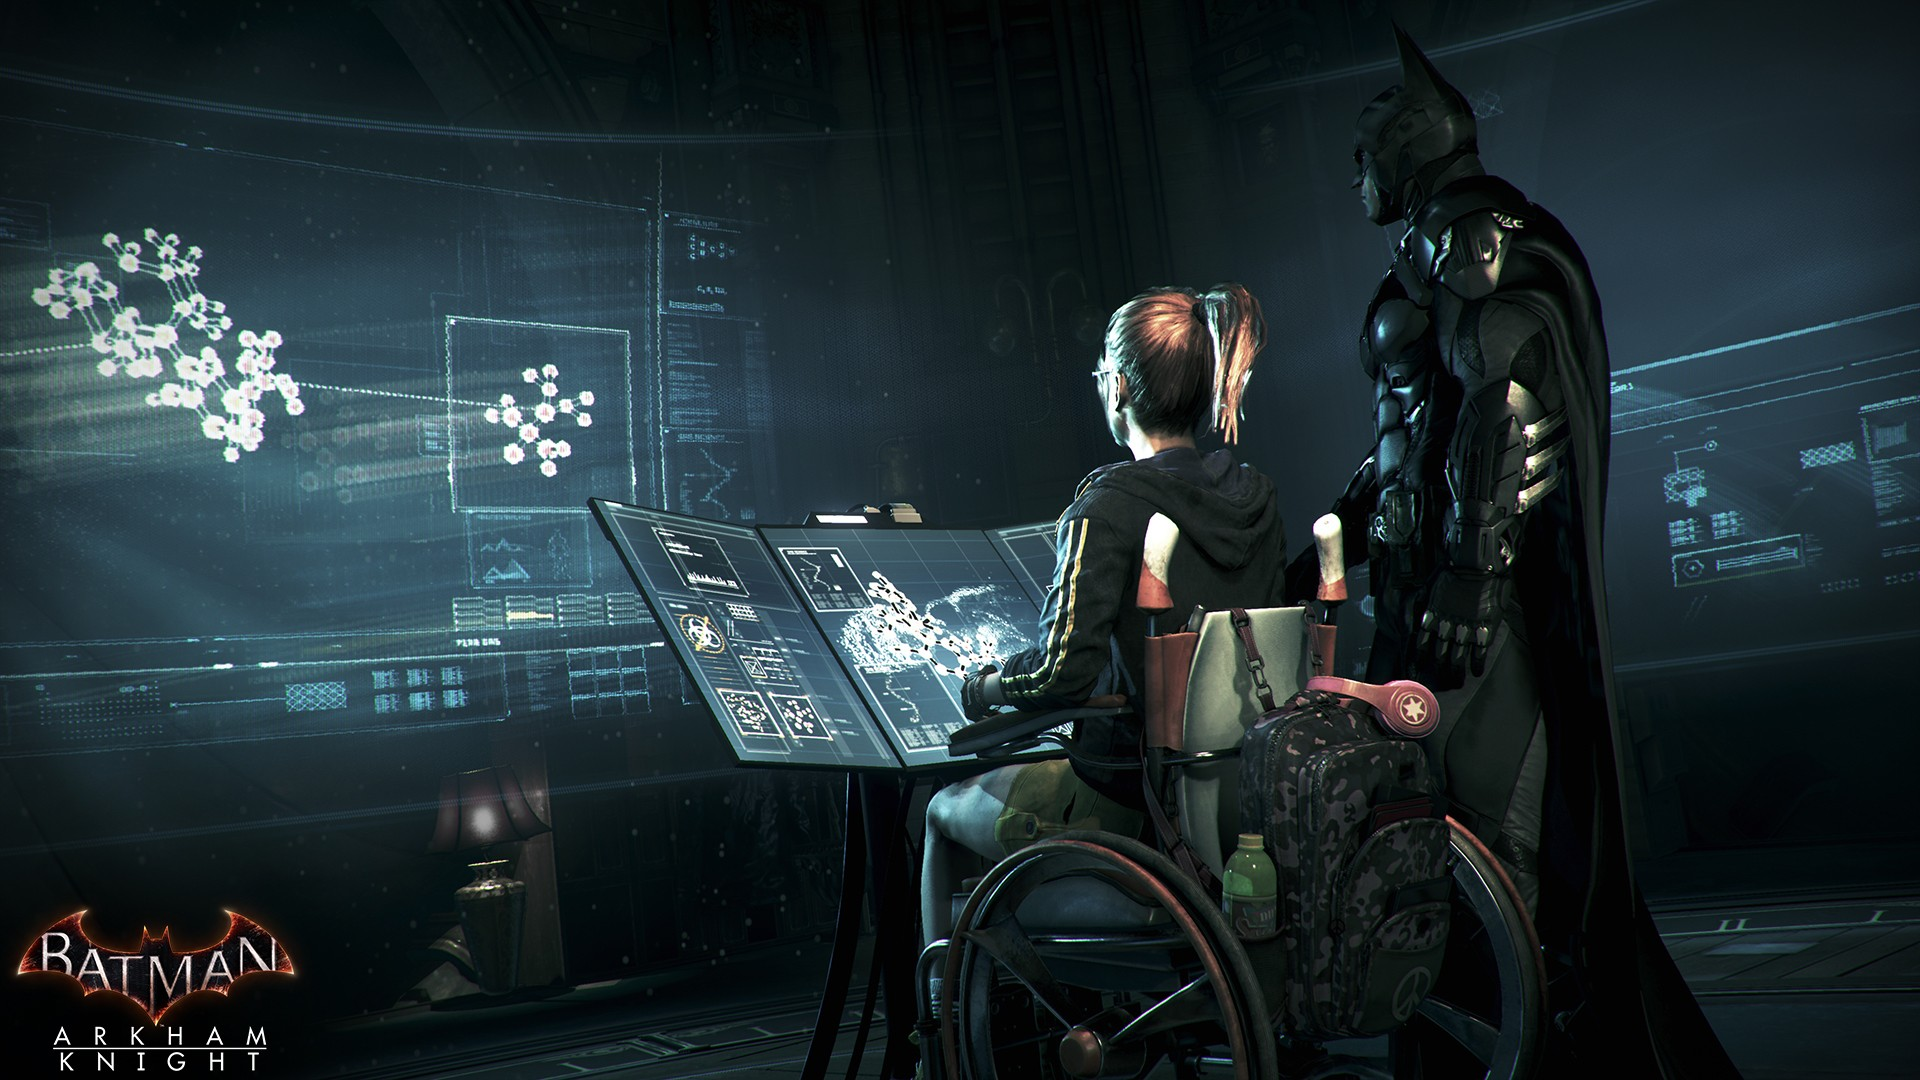 net50 set of batman arkham knight wallpapers 1920 x 1080 hd 1920x1080